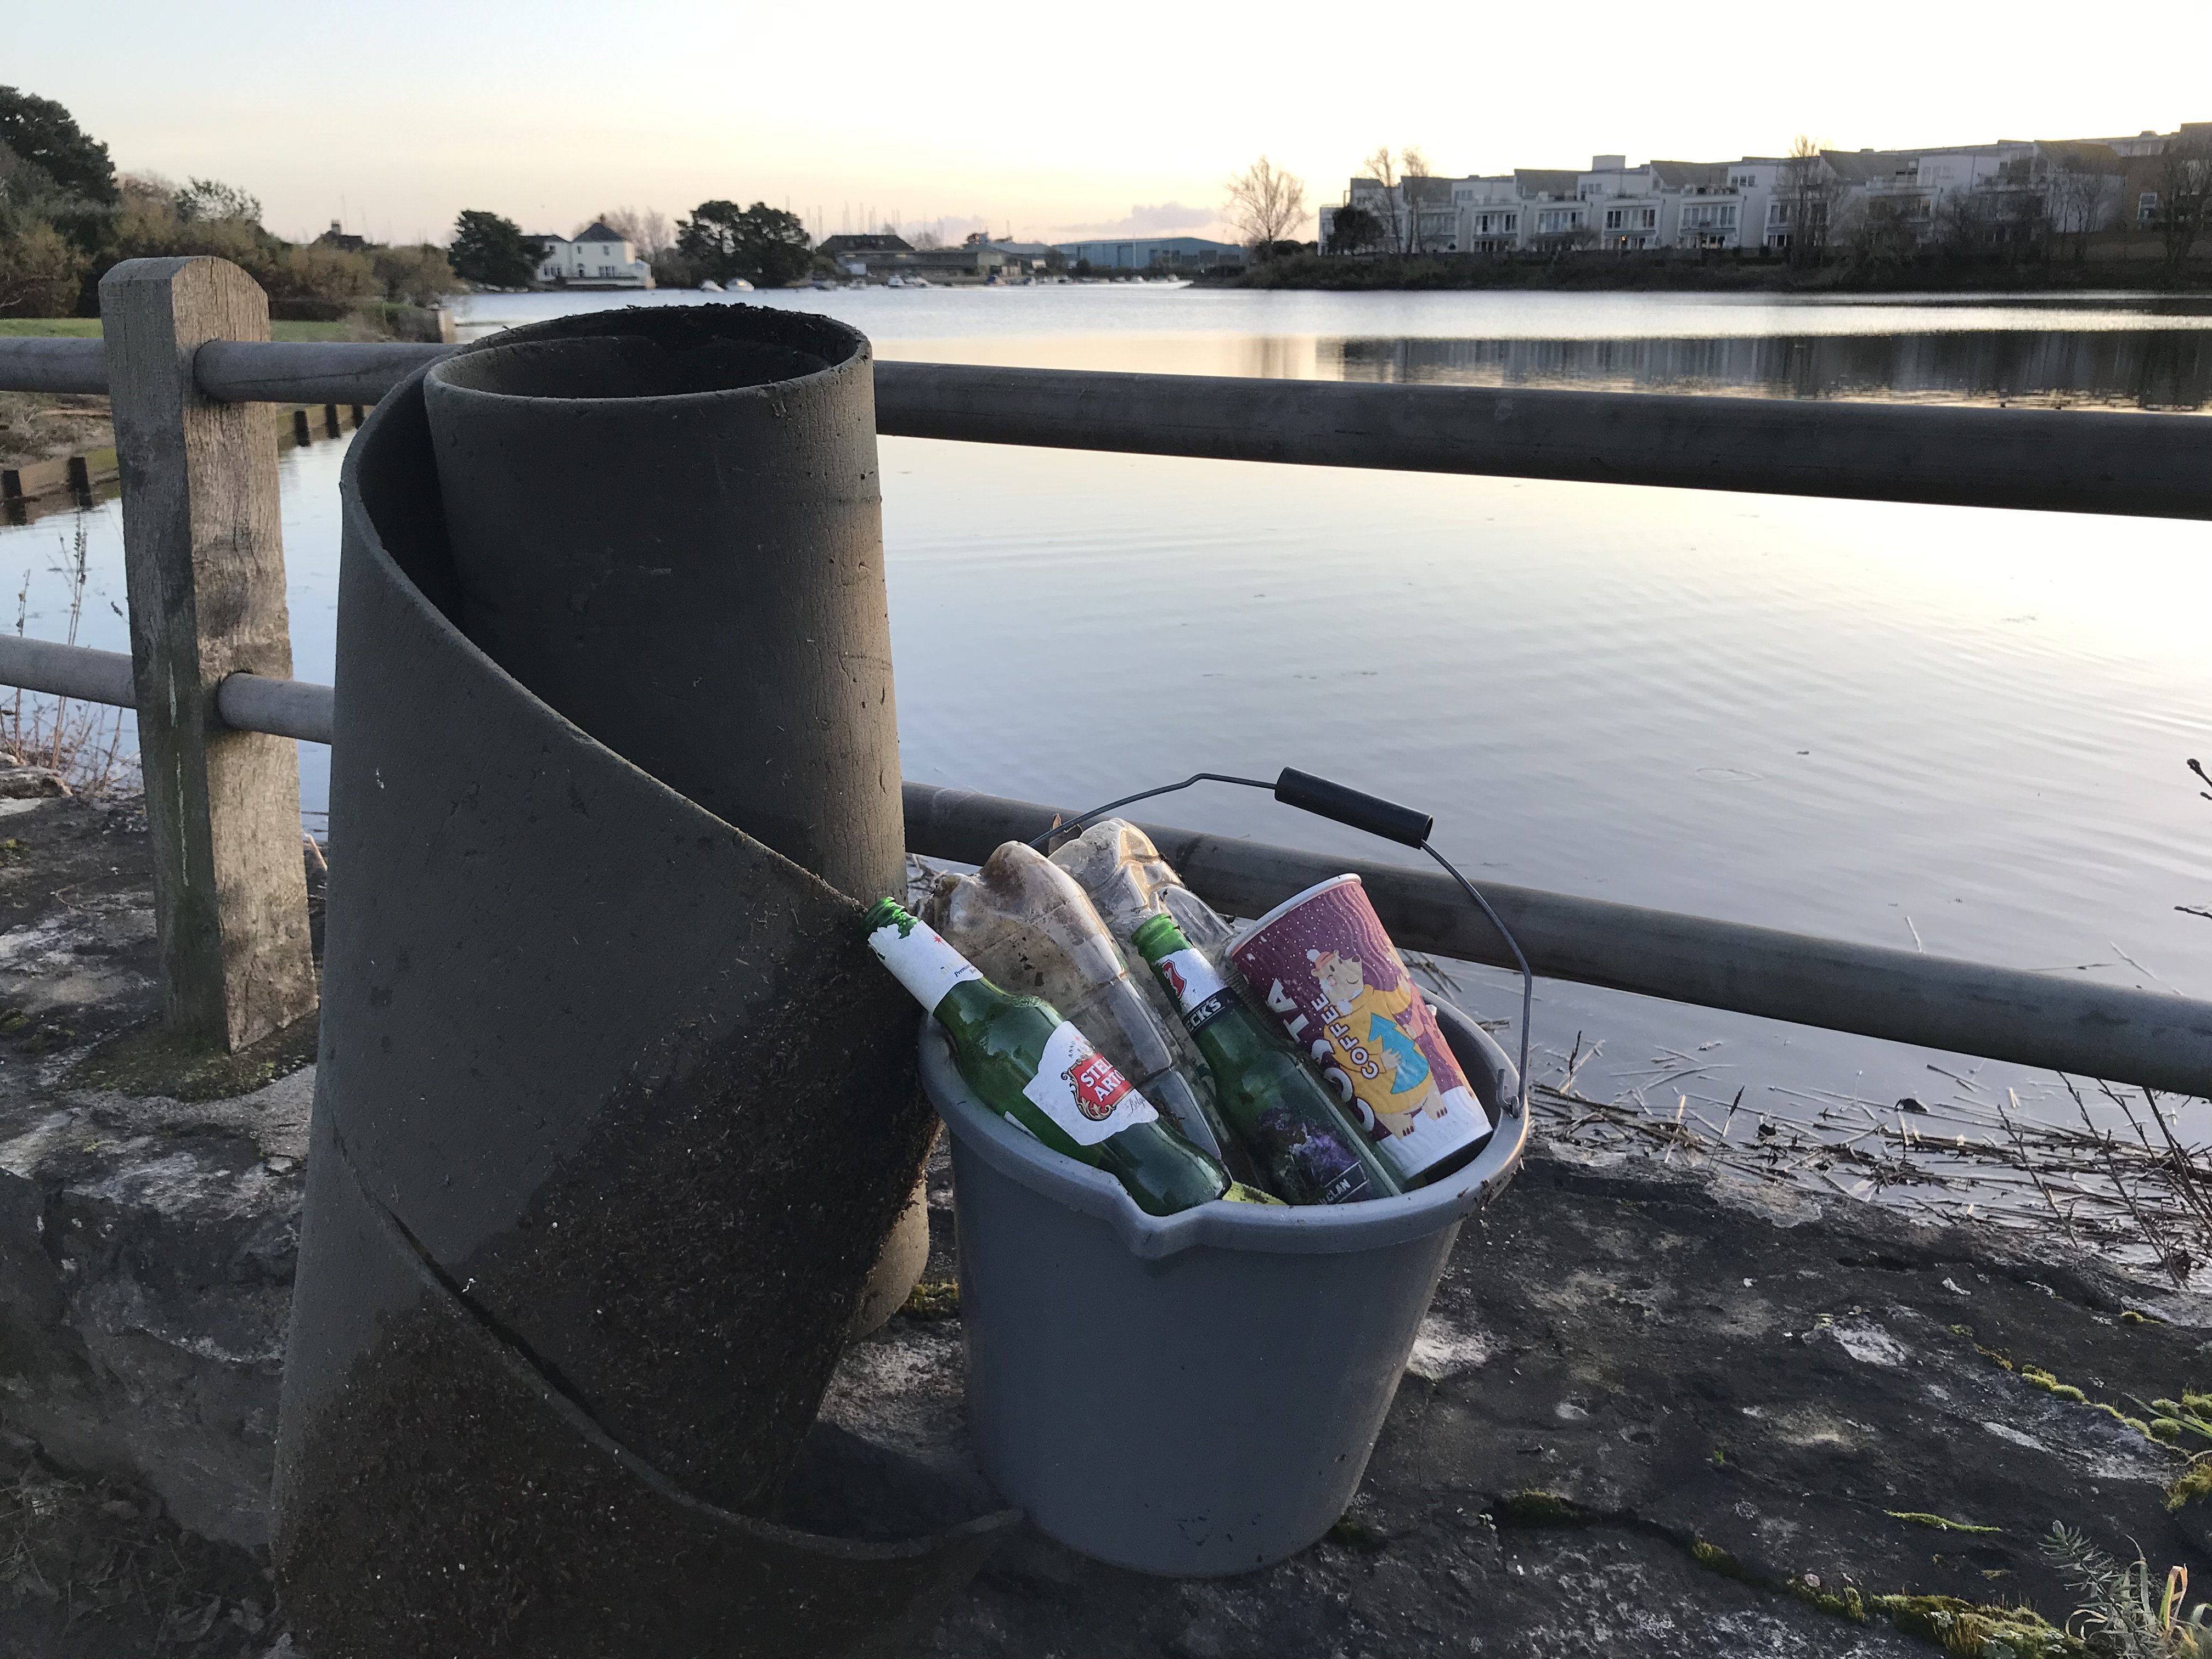 Rubbish river 1 2020